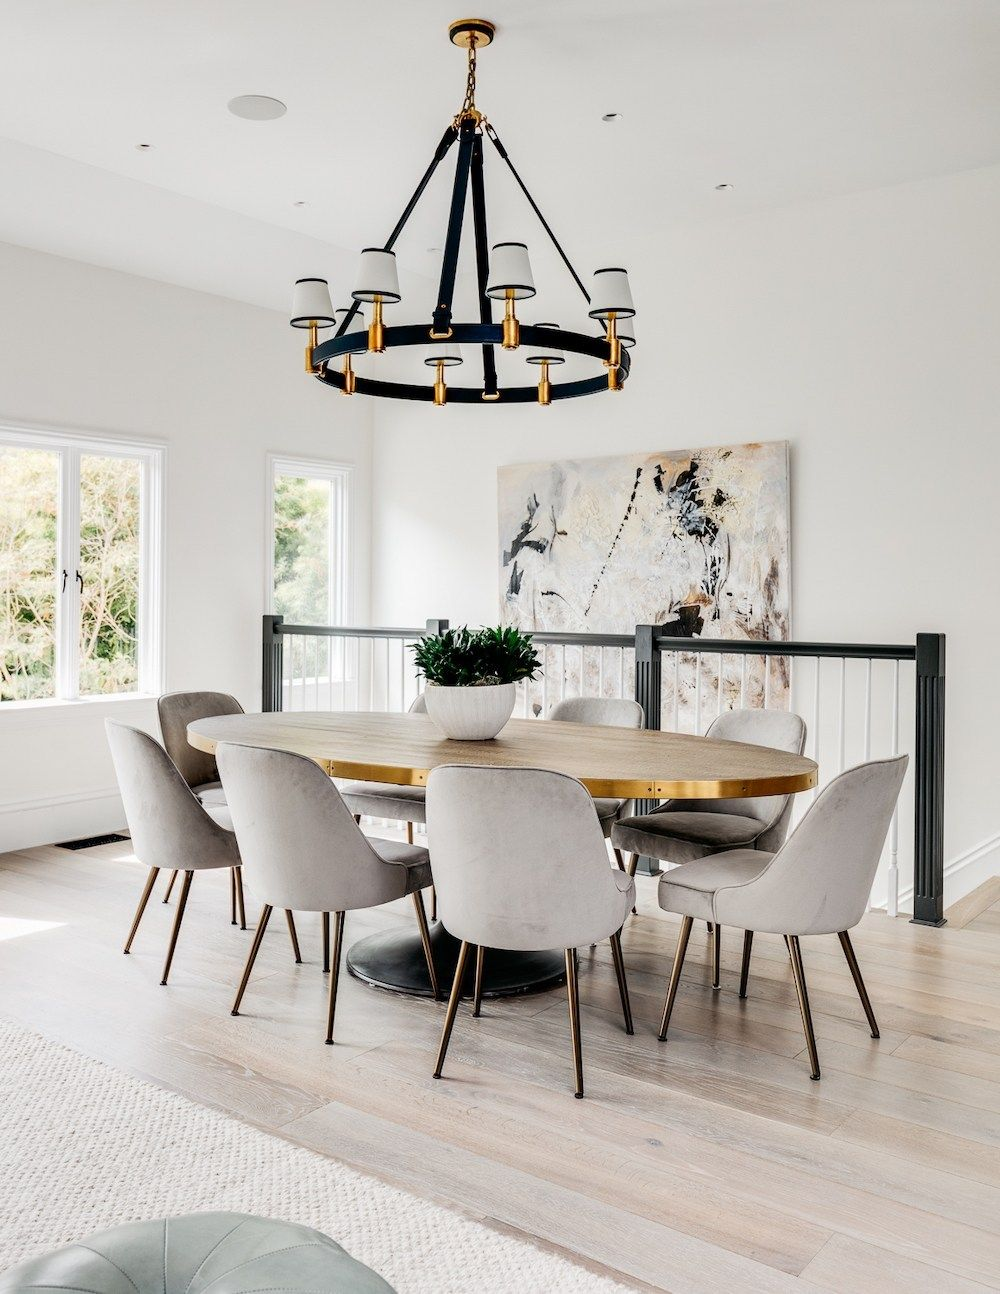 Oval Dining Table Modern White Interior House From Full House